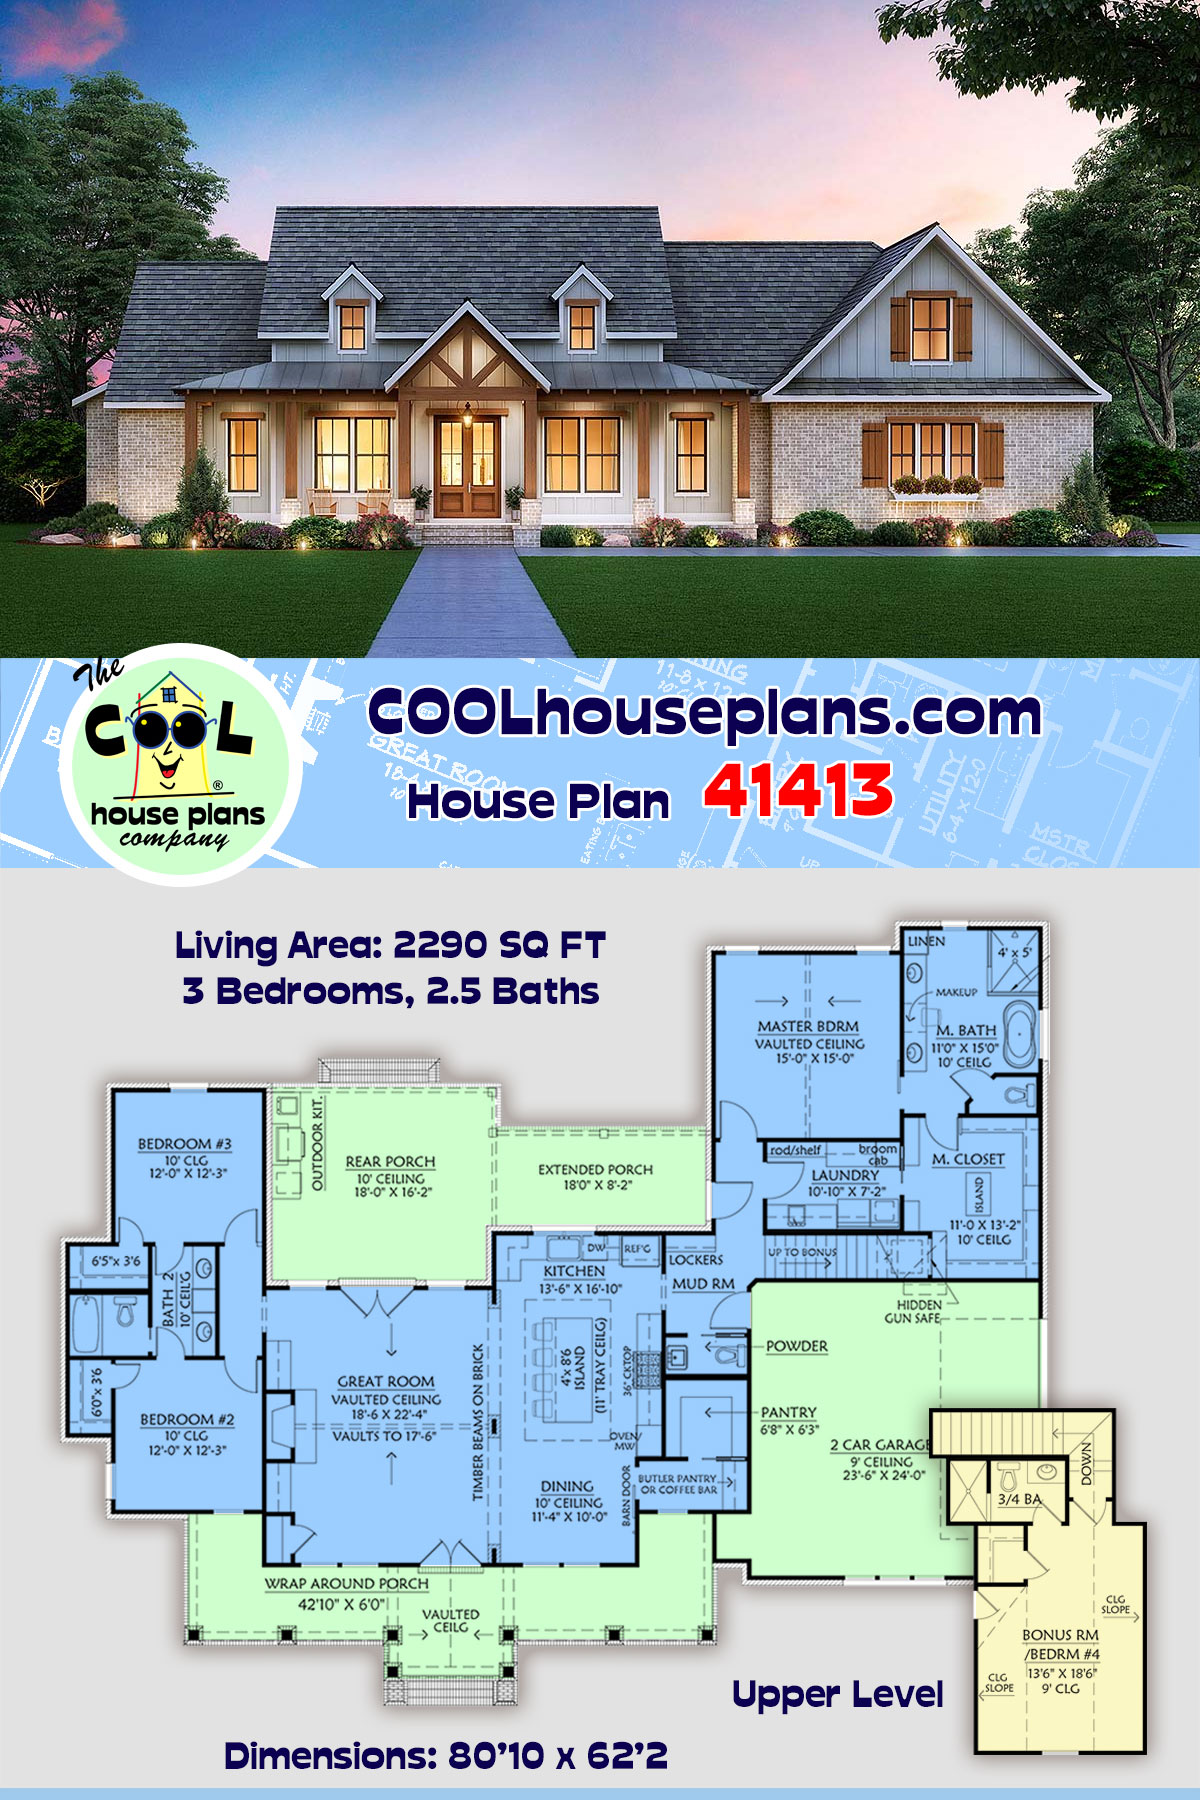 Cottage, Country, Craftsman, Farmhouse House Plan 41413 with 3 Beds, 3 Baths, 2 Car Garage